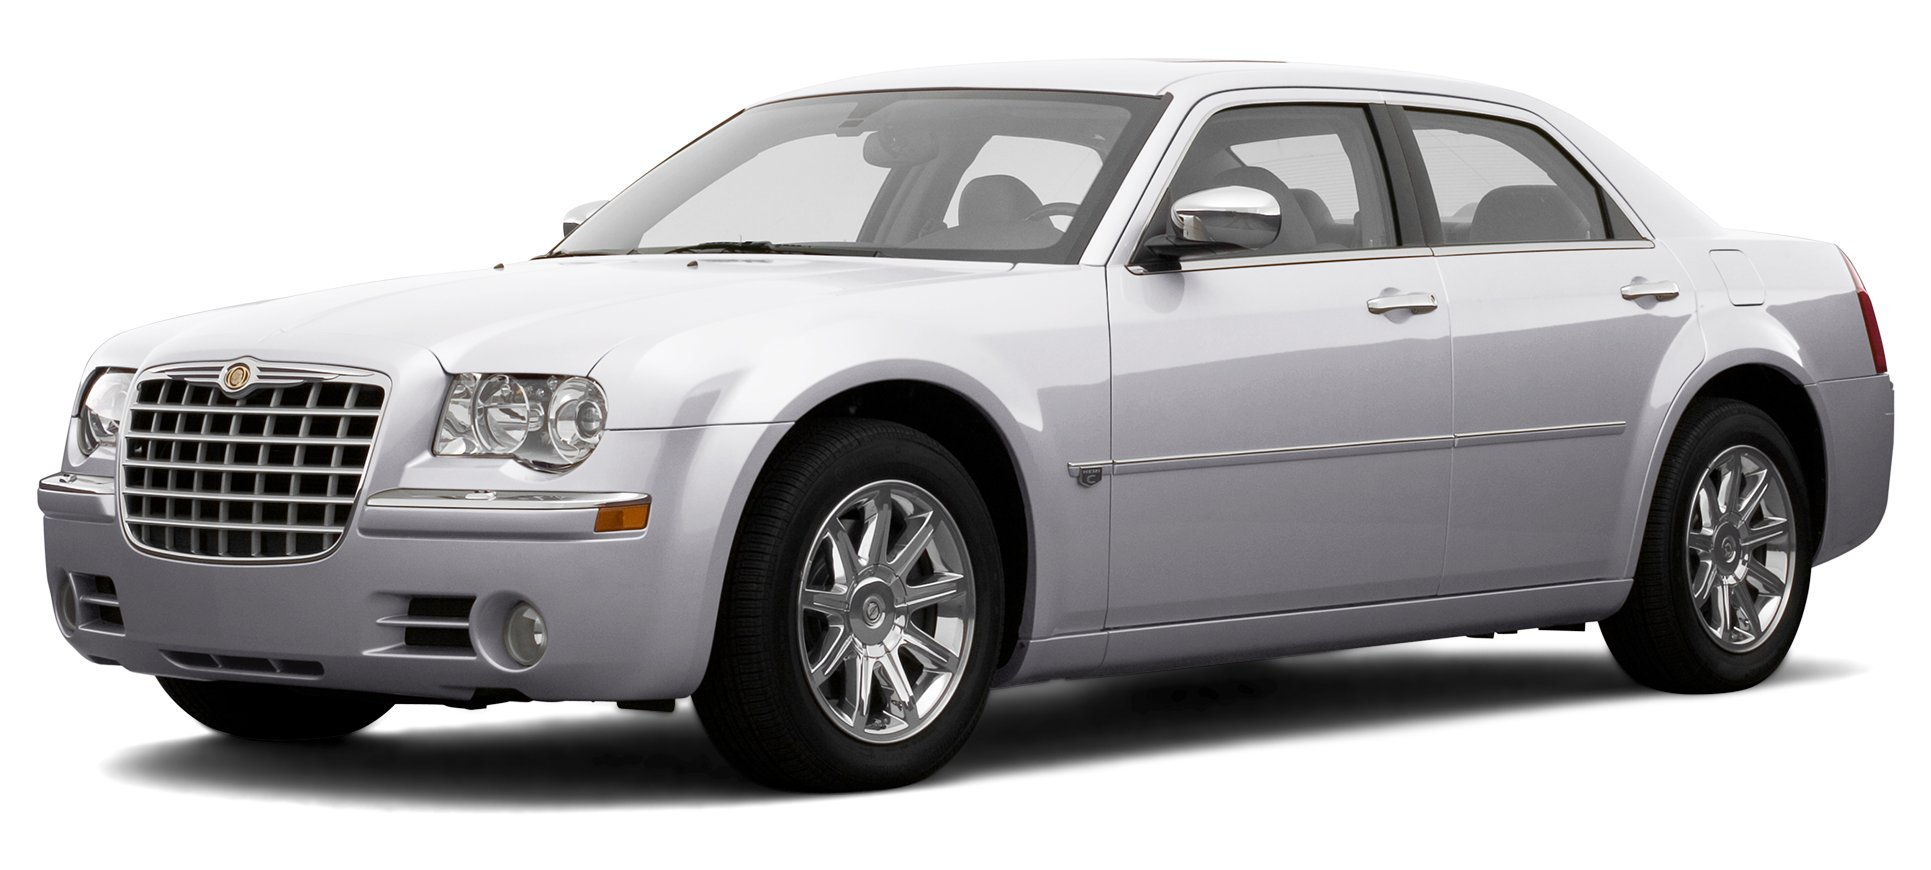 2007 Chrysler 300 C, 4-Door Sedan 300 Rear Wheel Drive .